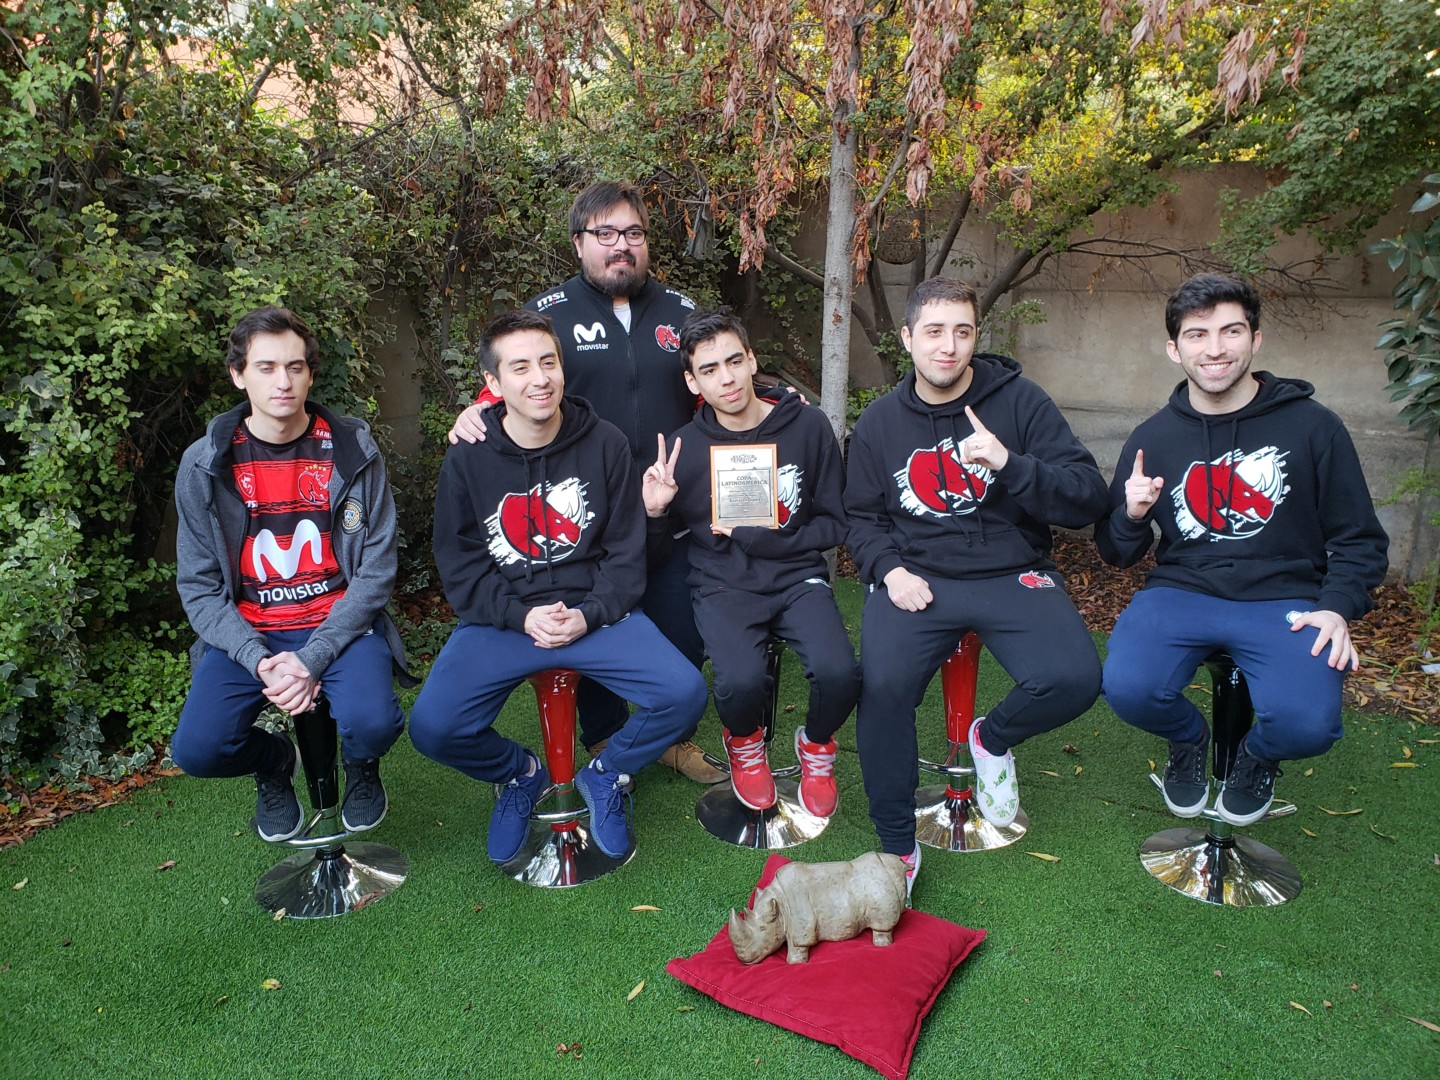 Una gaming house por dentro: la intimidad de KLG en Chile